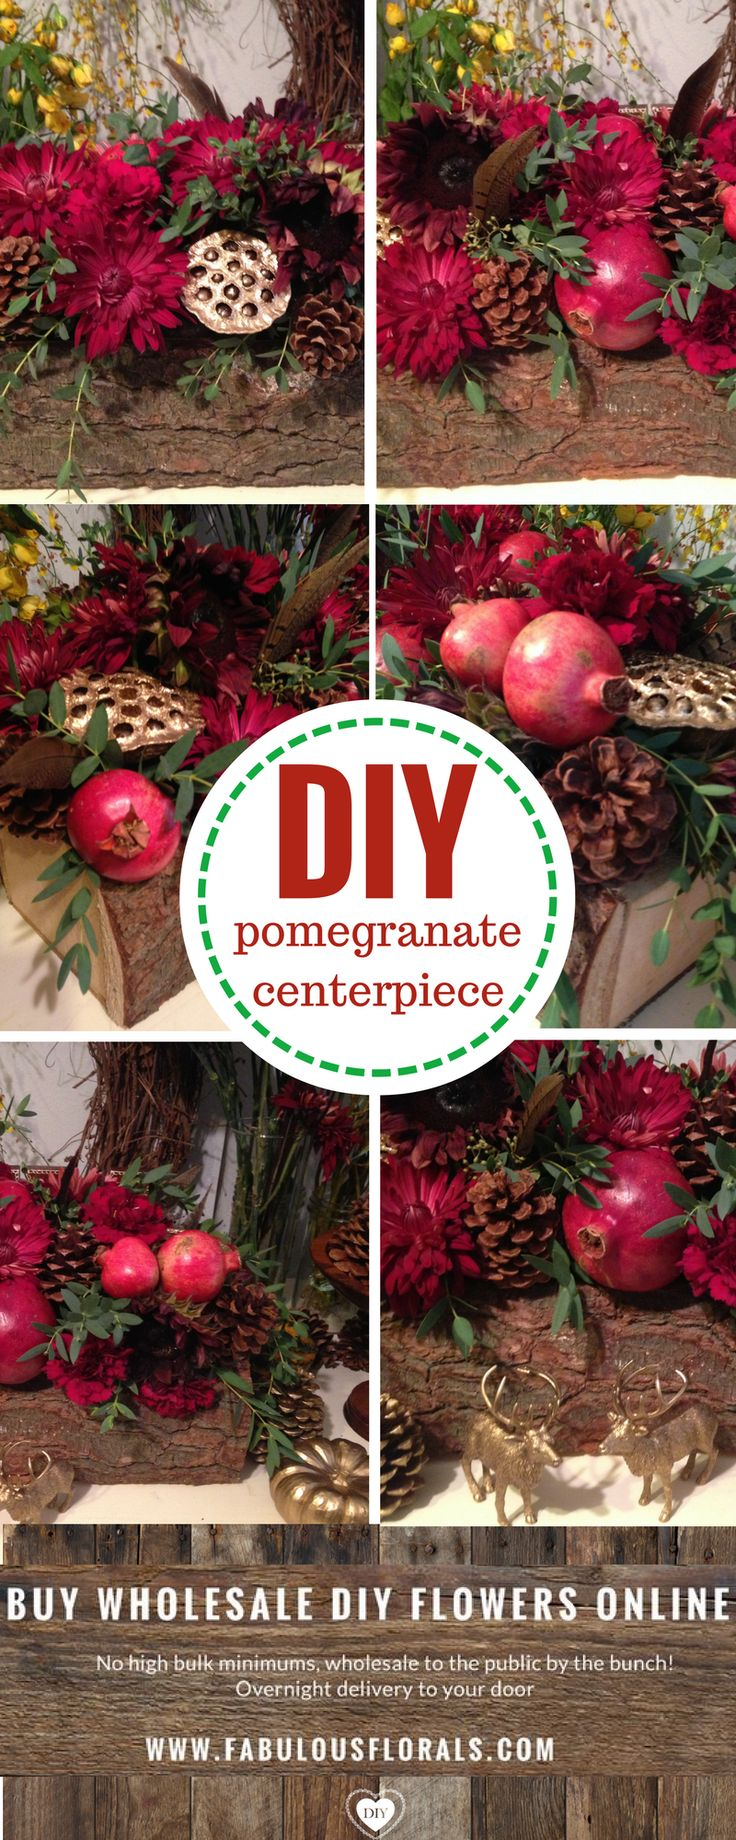 Holiday arrangements wholesale bulk flowers fiftyflowers - Diy Holiday Pomegranate Centerpiece 2017 Christmas Flower Trends Www Fabulousflorals Com The